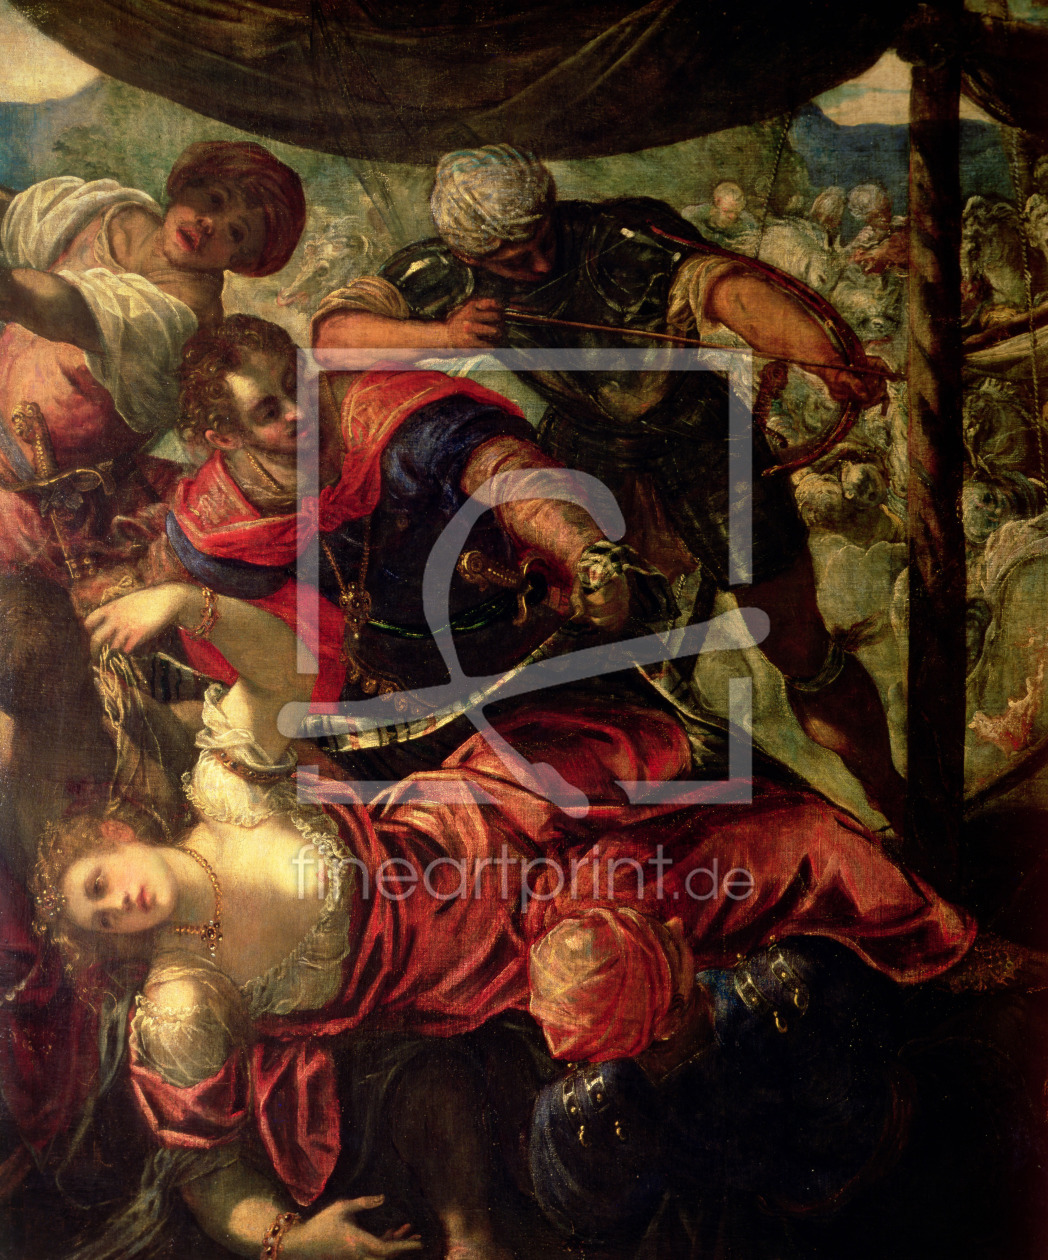 Bild-Nr.: 31001242 Battle between Turks and Christians, c.1588/89 erstellt von Tintoretto, Jacopo